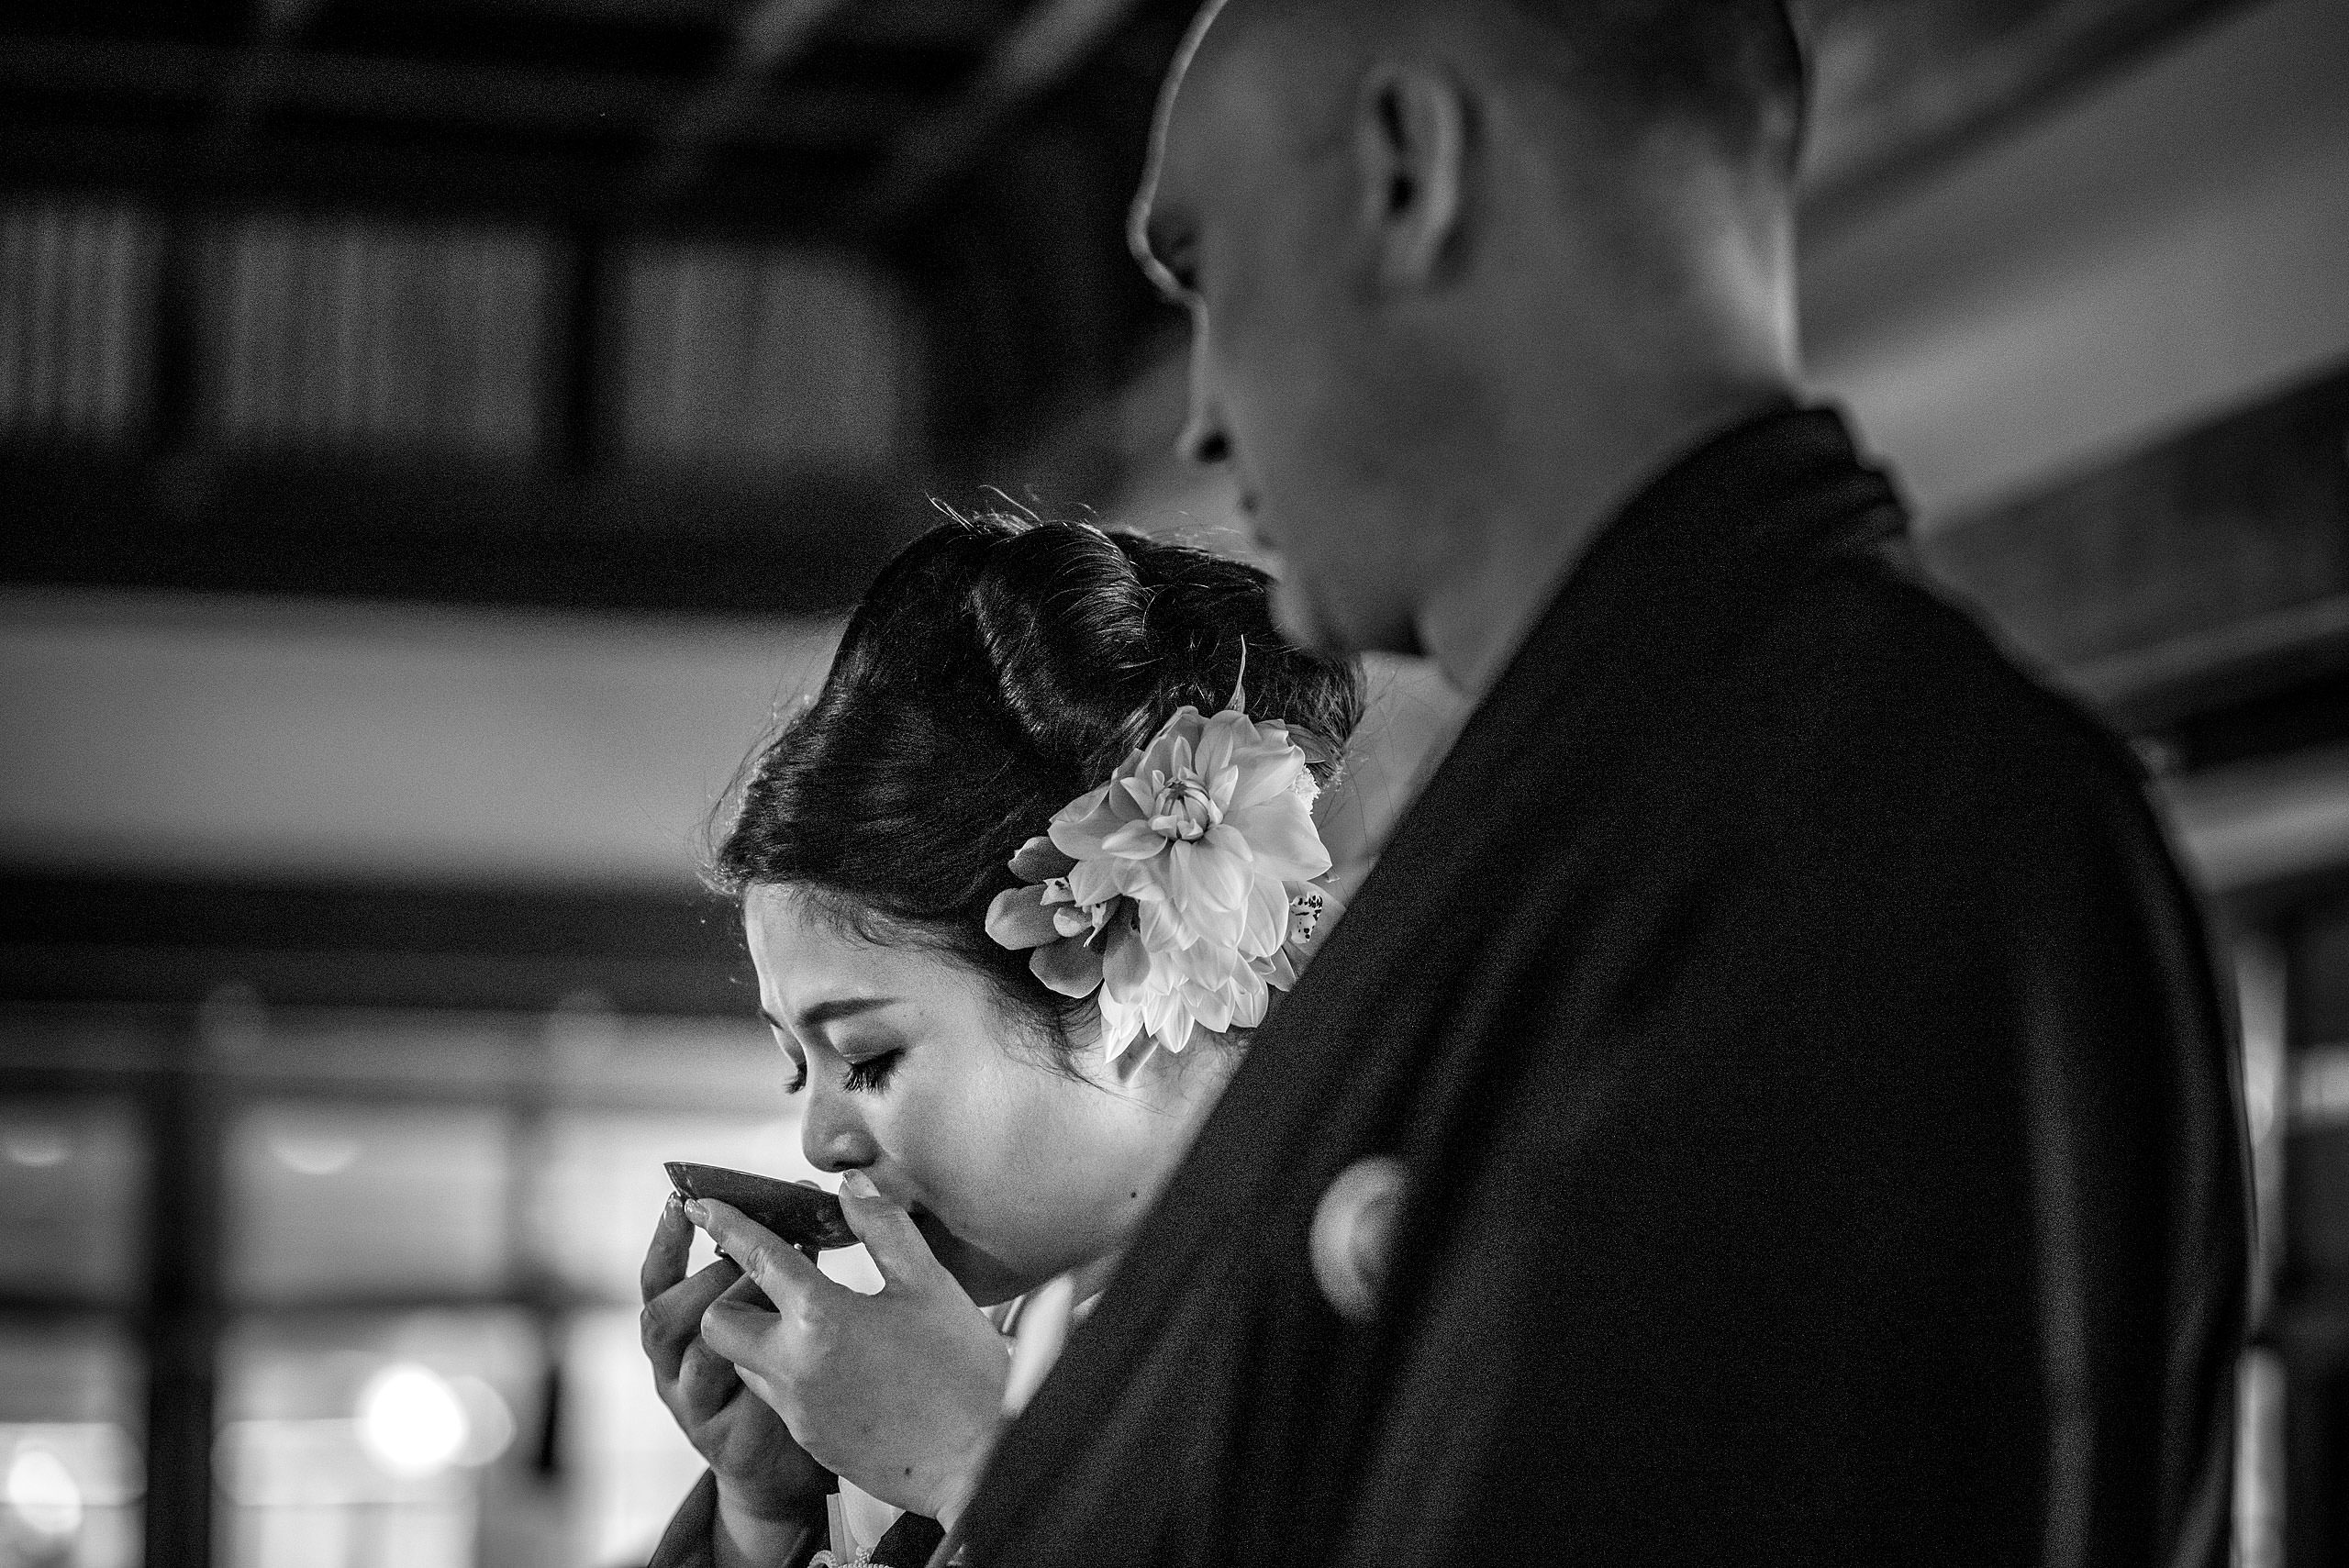 a Japanese women drinking from a cup by Japan Destination Wedding Photographer Sean LeBlanc